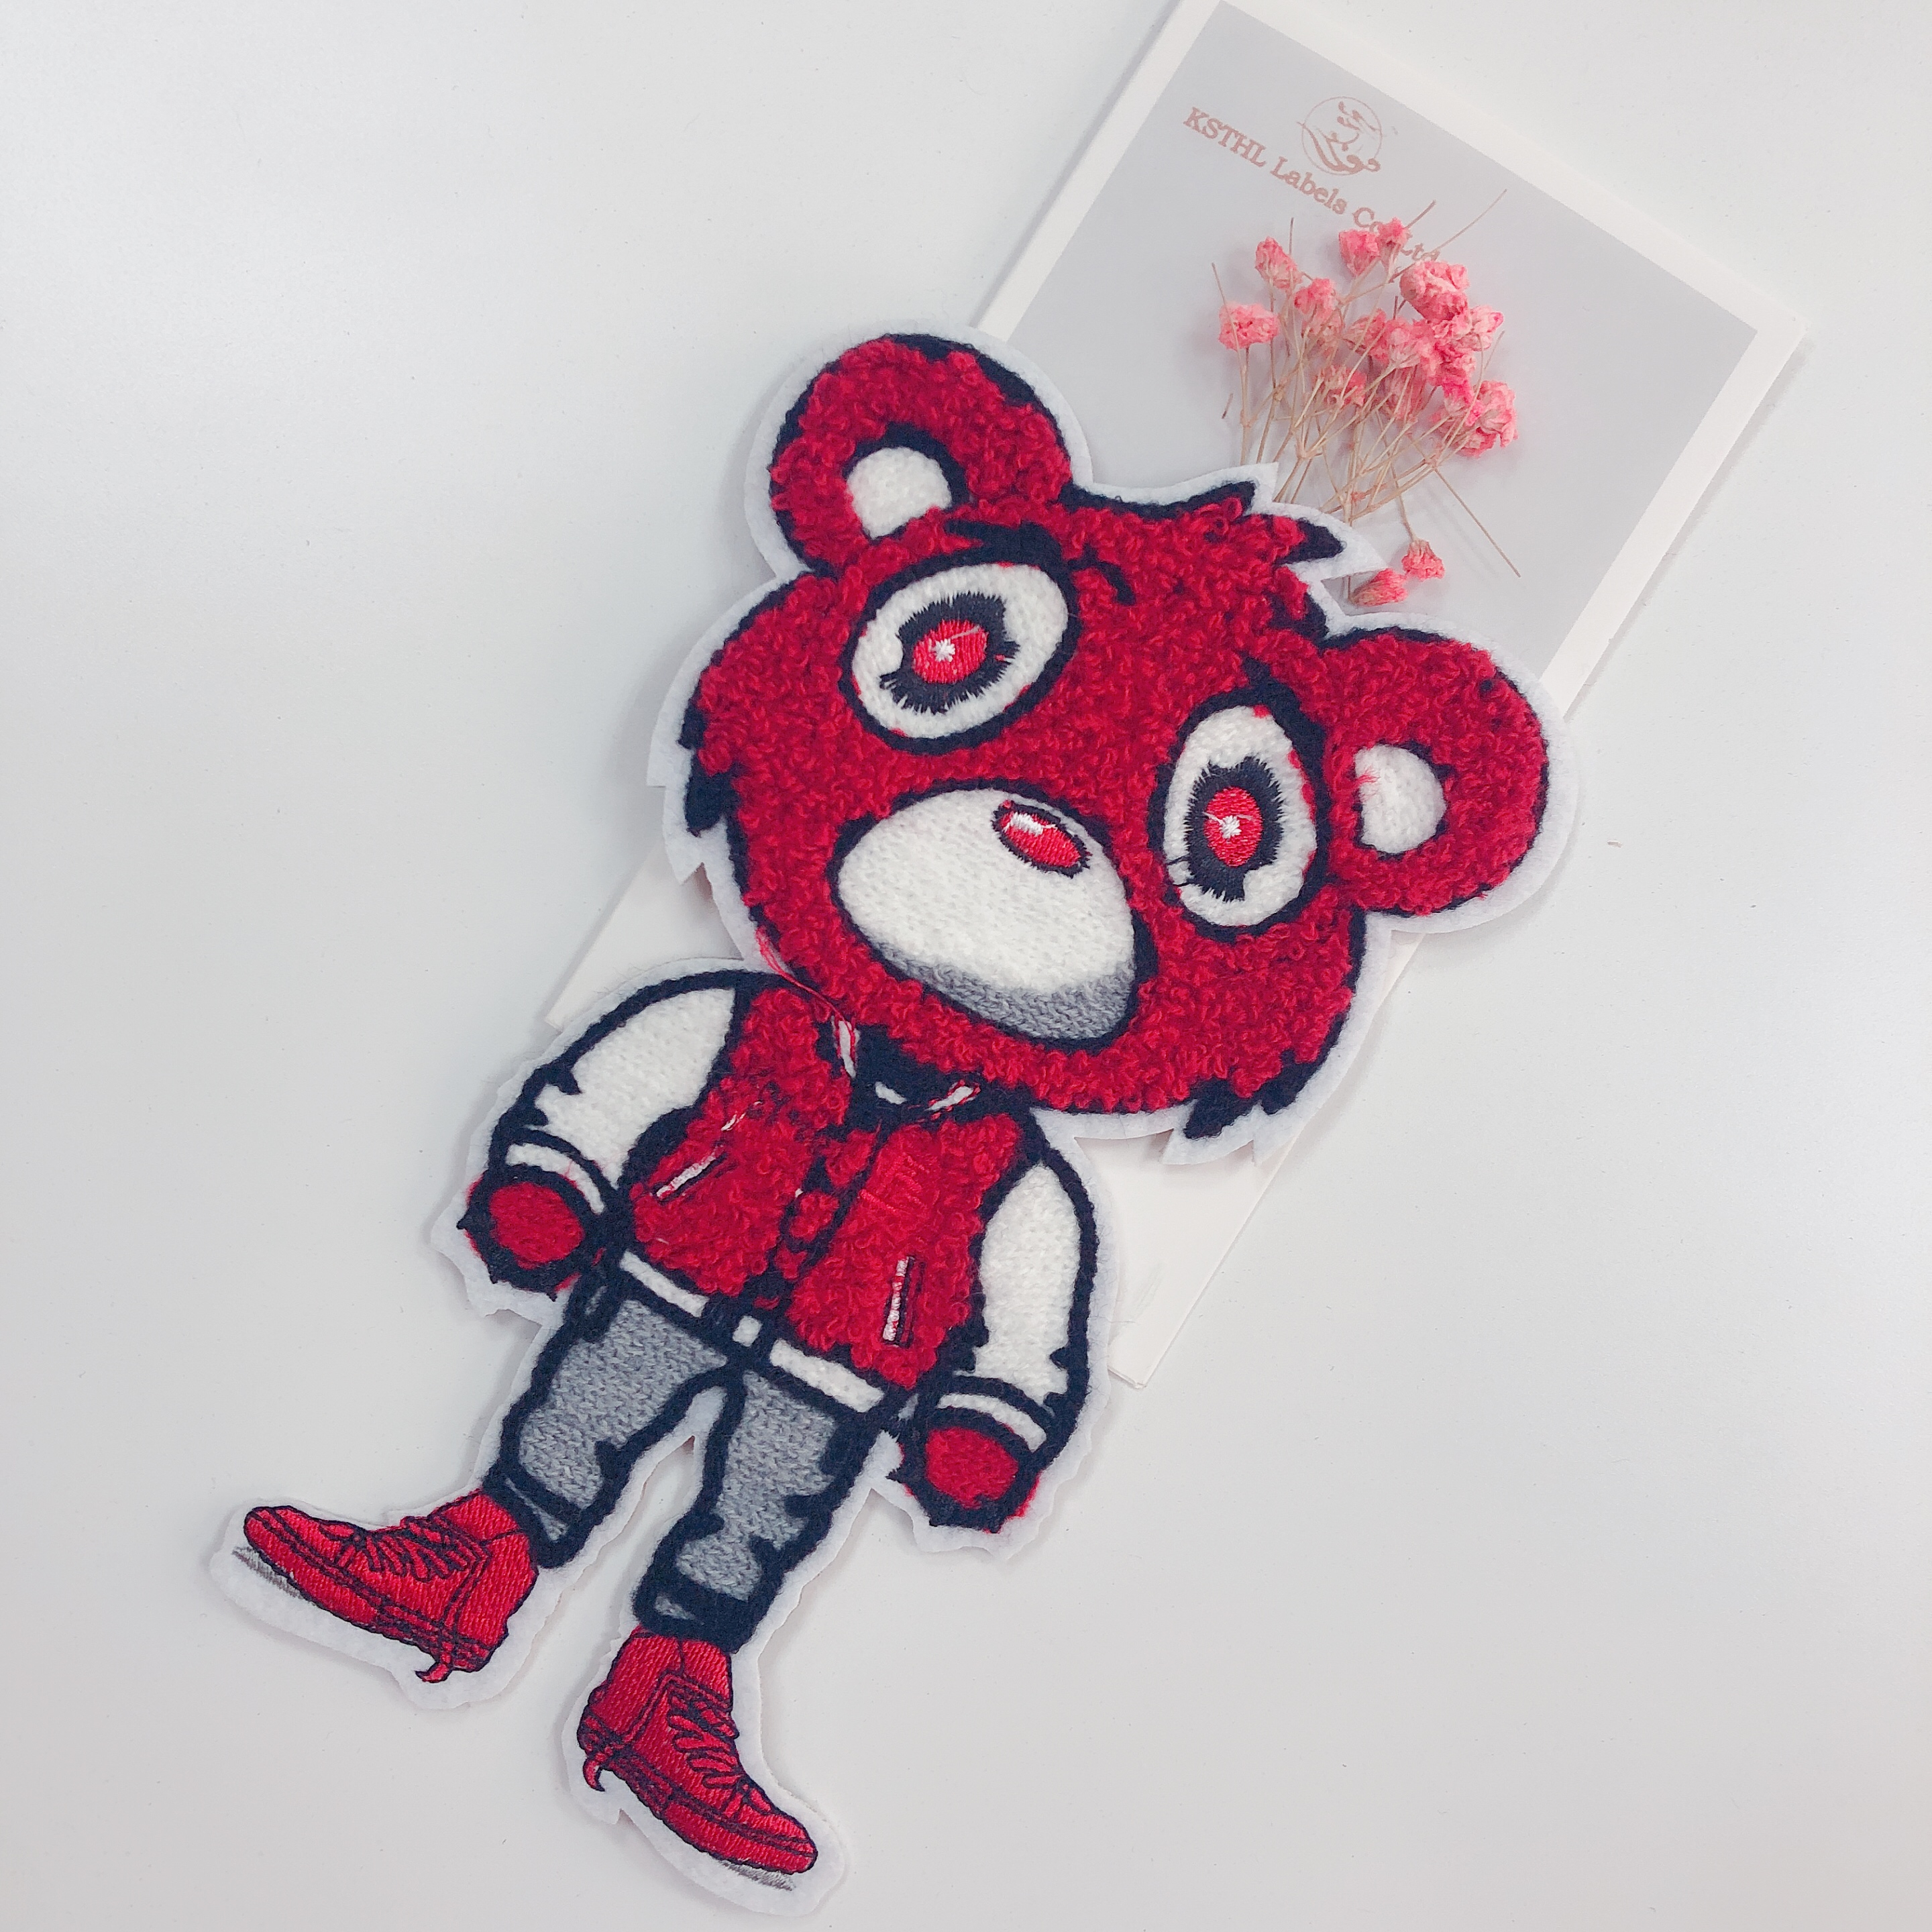 Wholesale custom sew on towel embroidery patch garment woven patch for boys for clothingIMG_1729